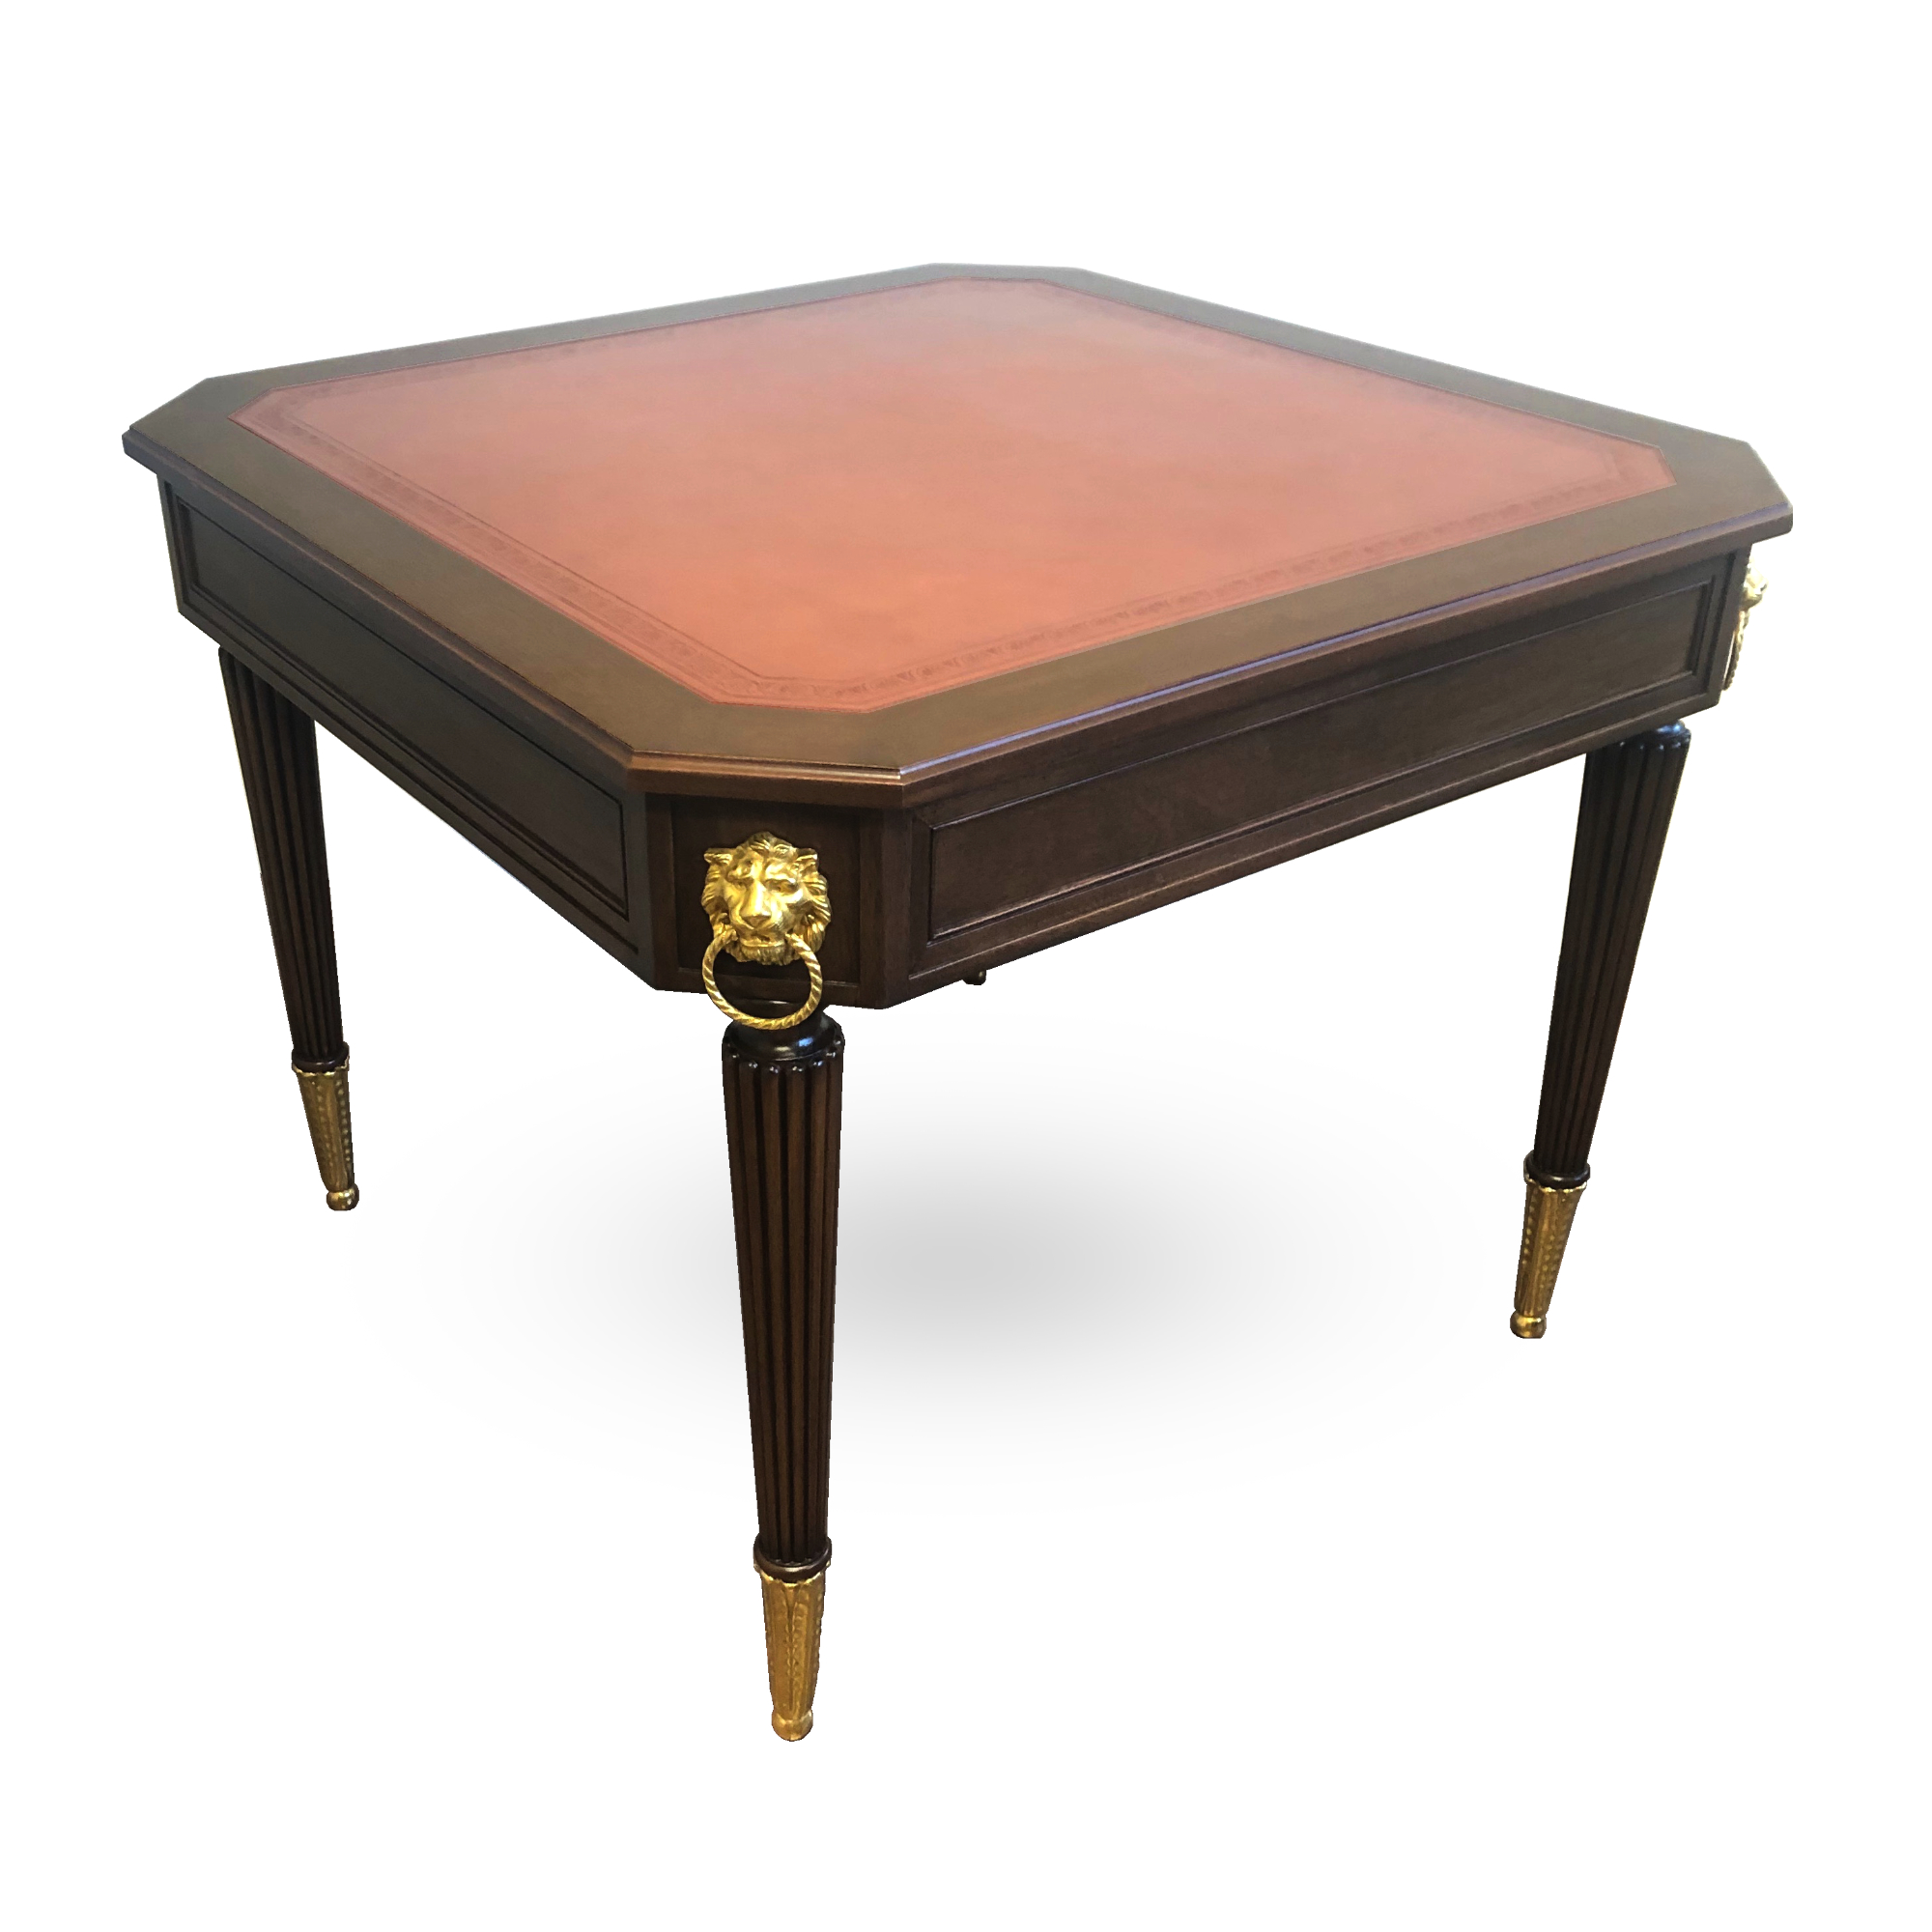 R619-English-Regency-Style-Desk-Leather-Top-Victoria-&-Son-Custom-Furniture-Antiques-Tolling.jpg